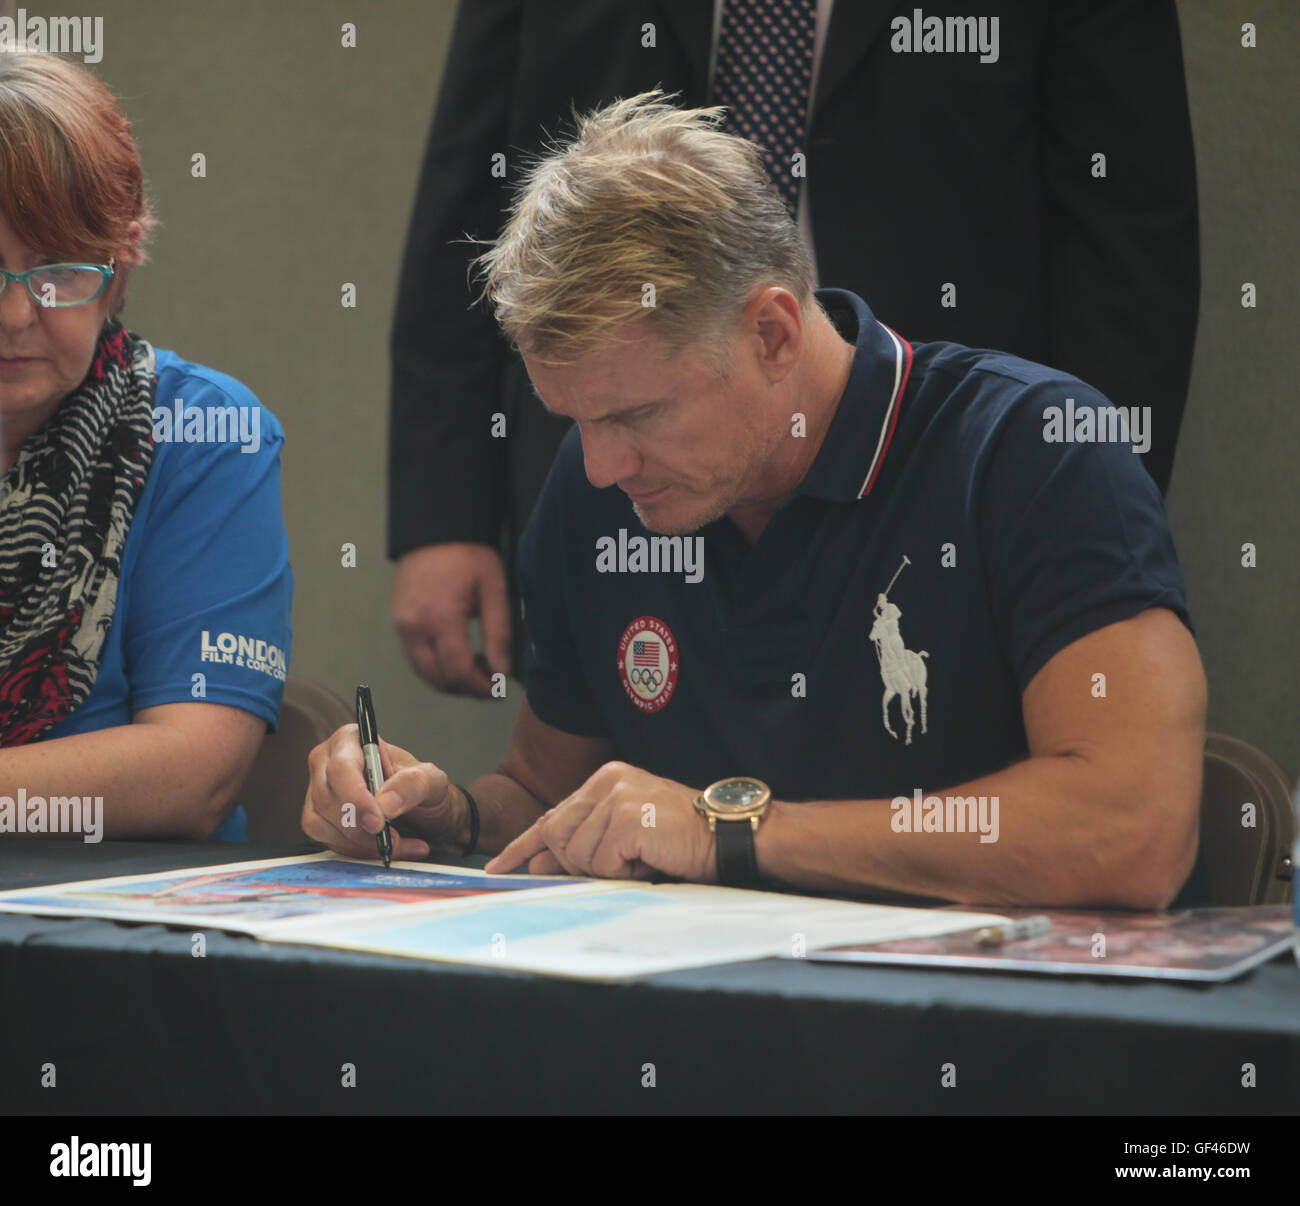 London UK 29 July 2016  Fist day of the London Film and Comic.con welcomed Dolph Lundgren ,better know as Ivan Drago ,the Russian boxer in the 1985 FILM Rocky IV signing photos for his fans.@ Paul Quezada-Neiman/Alamy Live News Credit:  Paul Quezada-Neiman/Alamy Live News Stock Photo